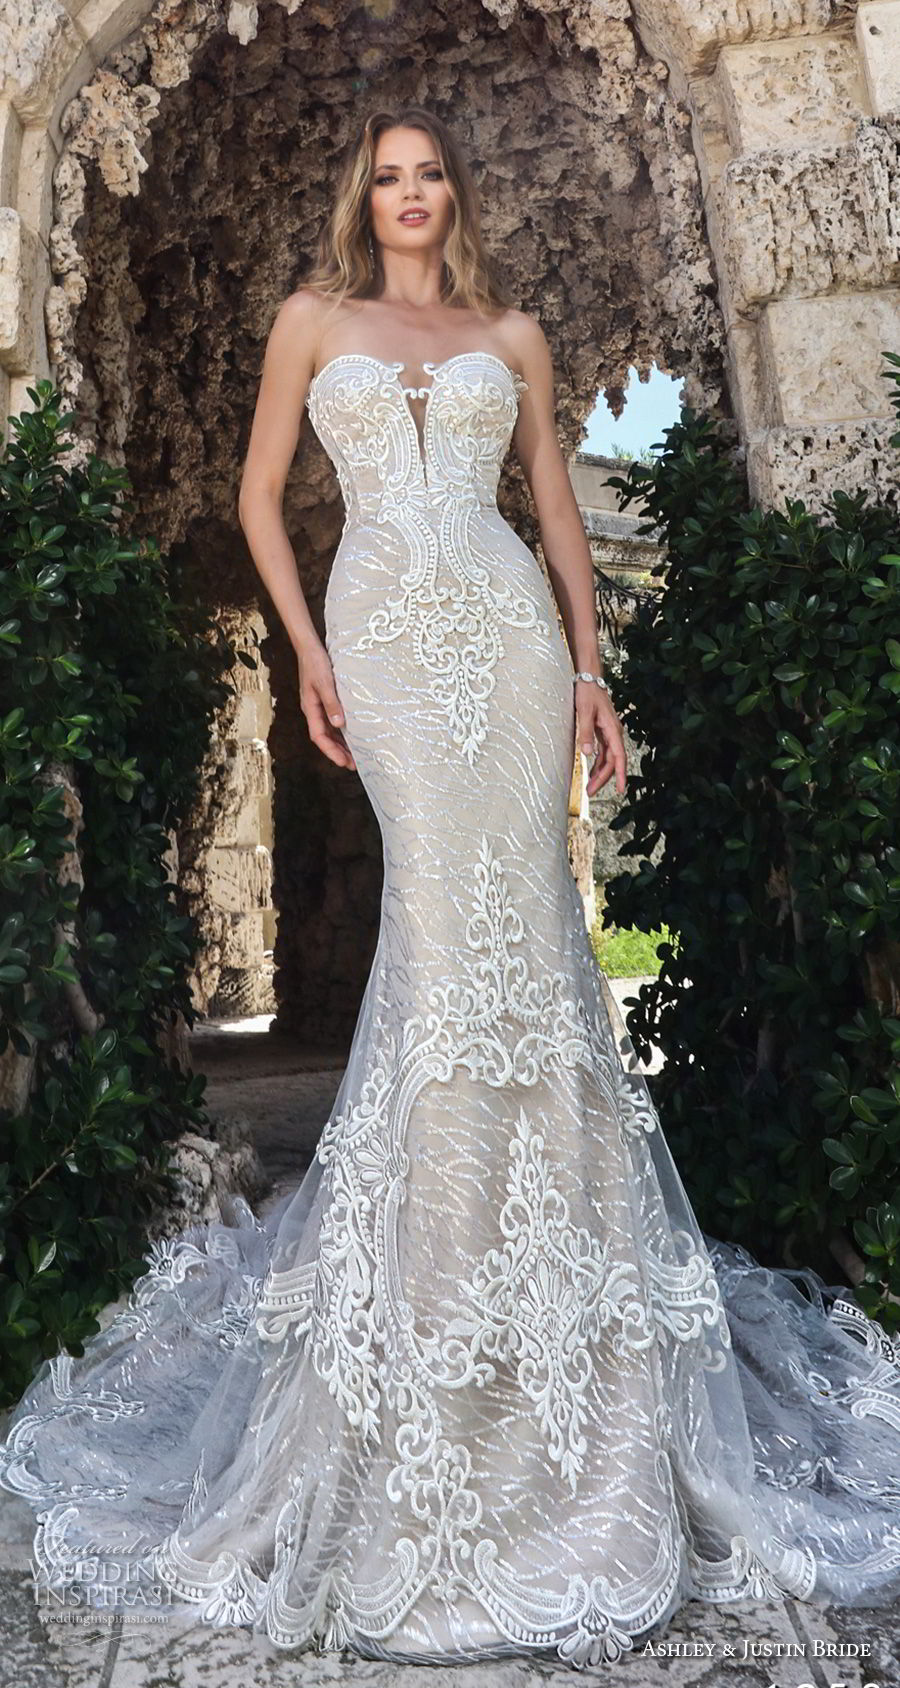 ashley justin spring 2018 bridal strapless deep plunging sweetheart neckline full embellishment elegant glamorous fit and flare wedding dress long train (8) mv